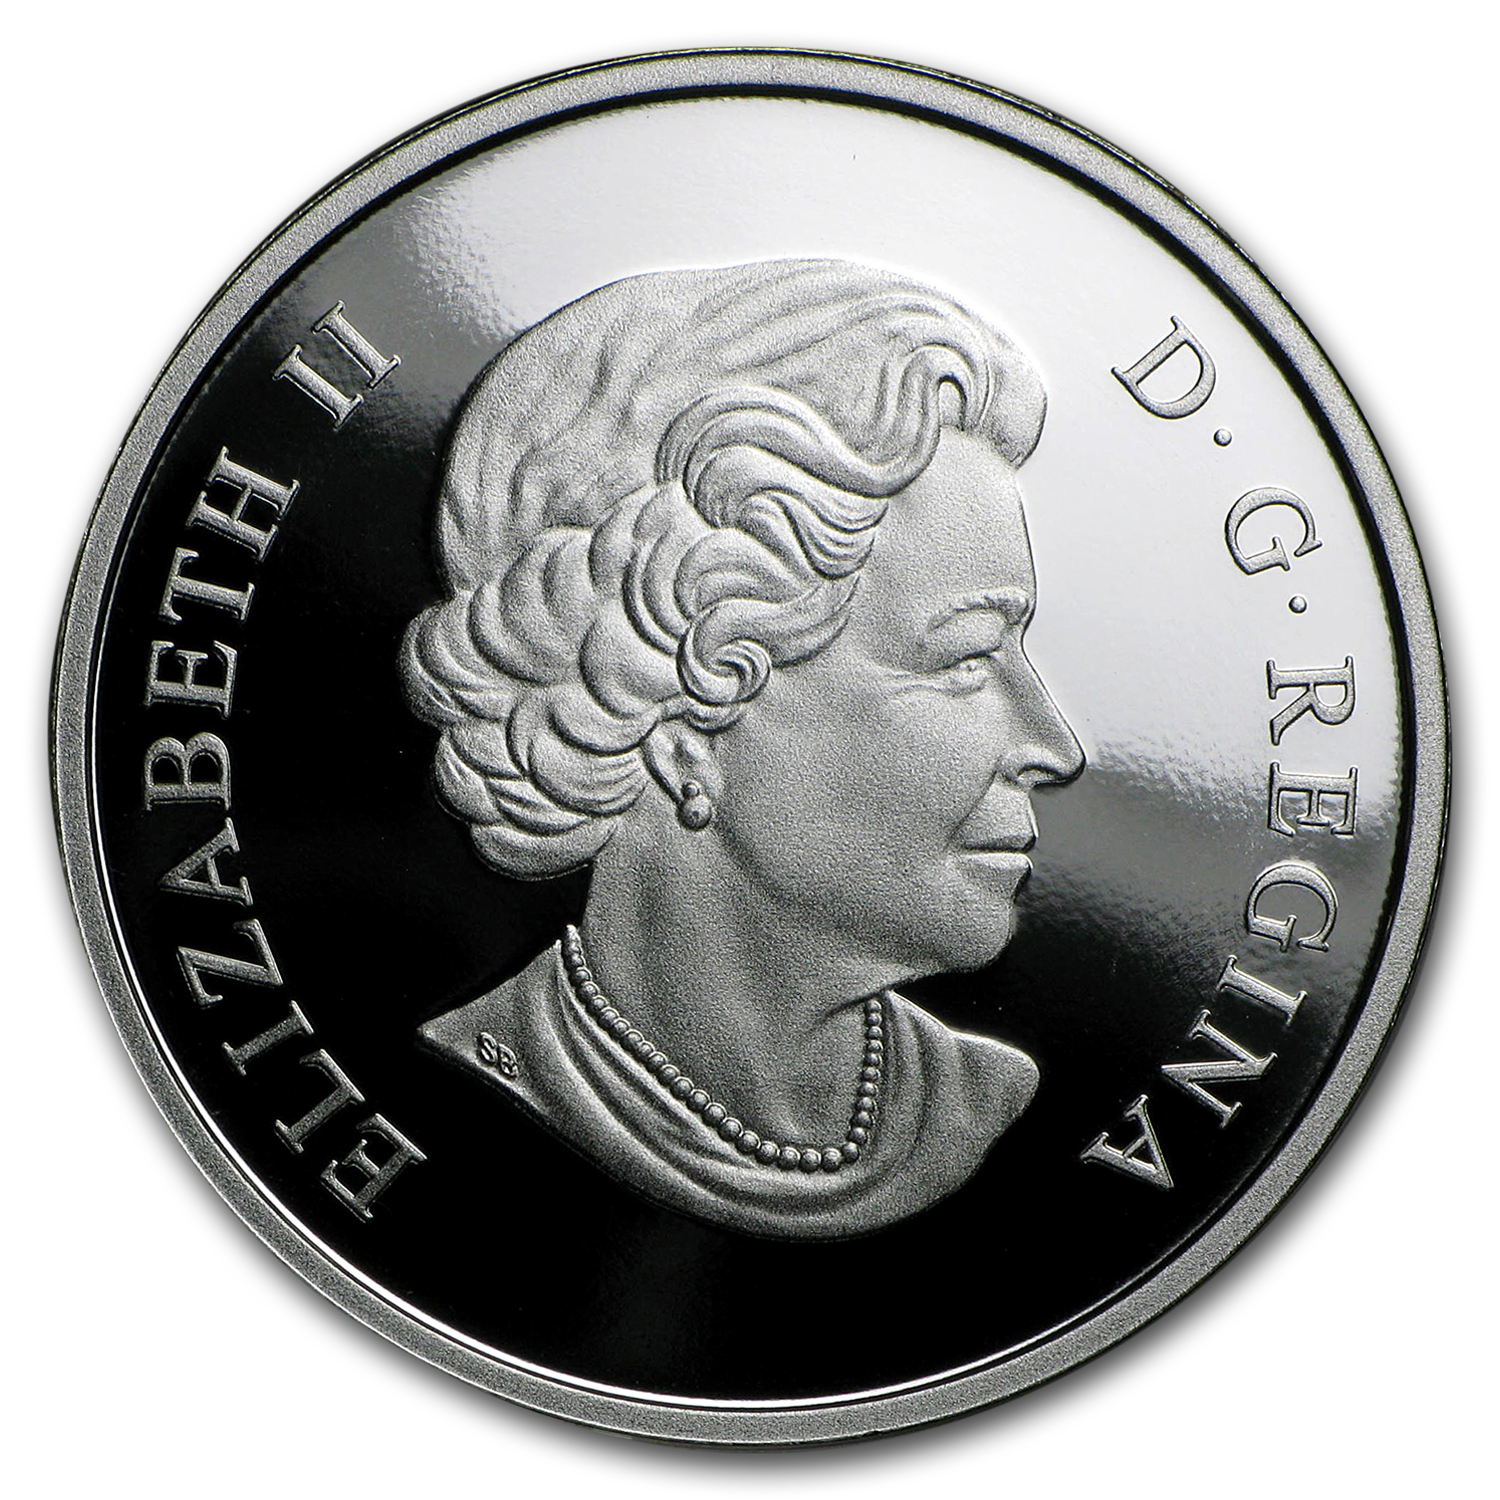 2012 1 oz Silver Canadian $20 The Queen's Diamond Jubilee UHR